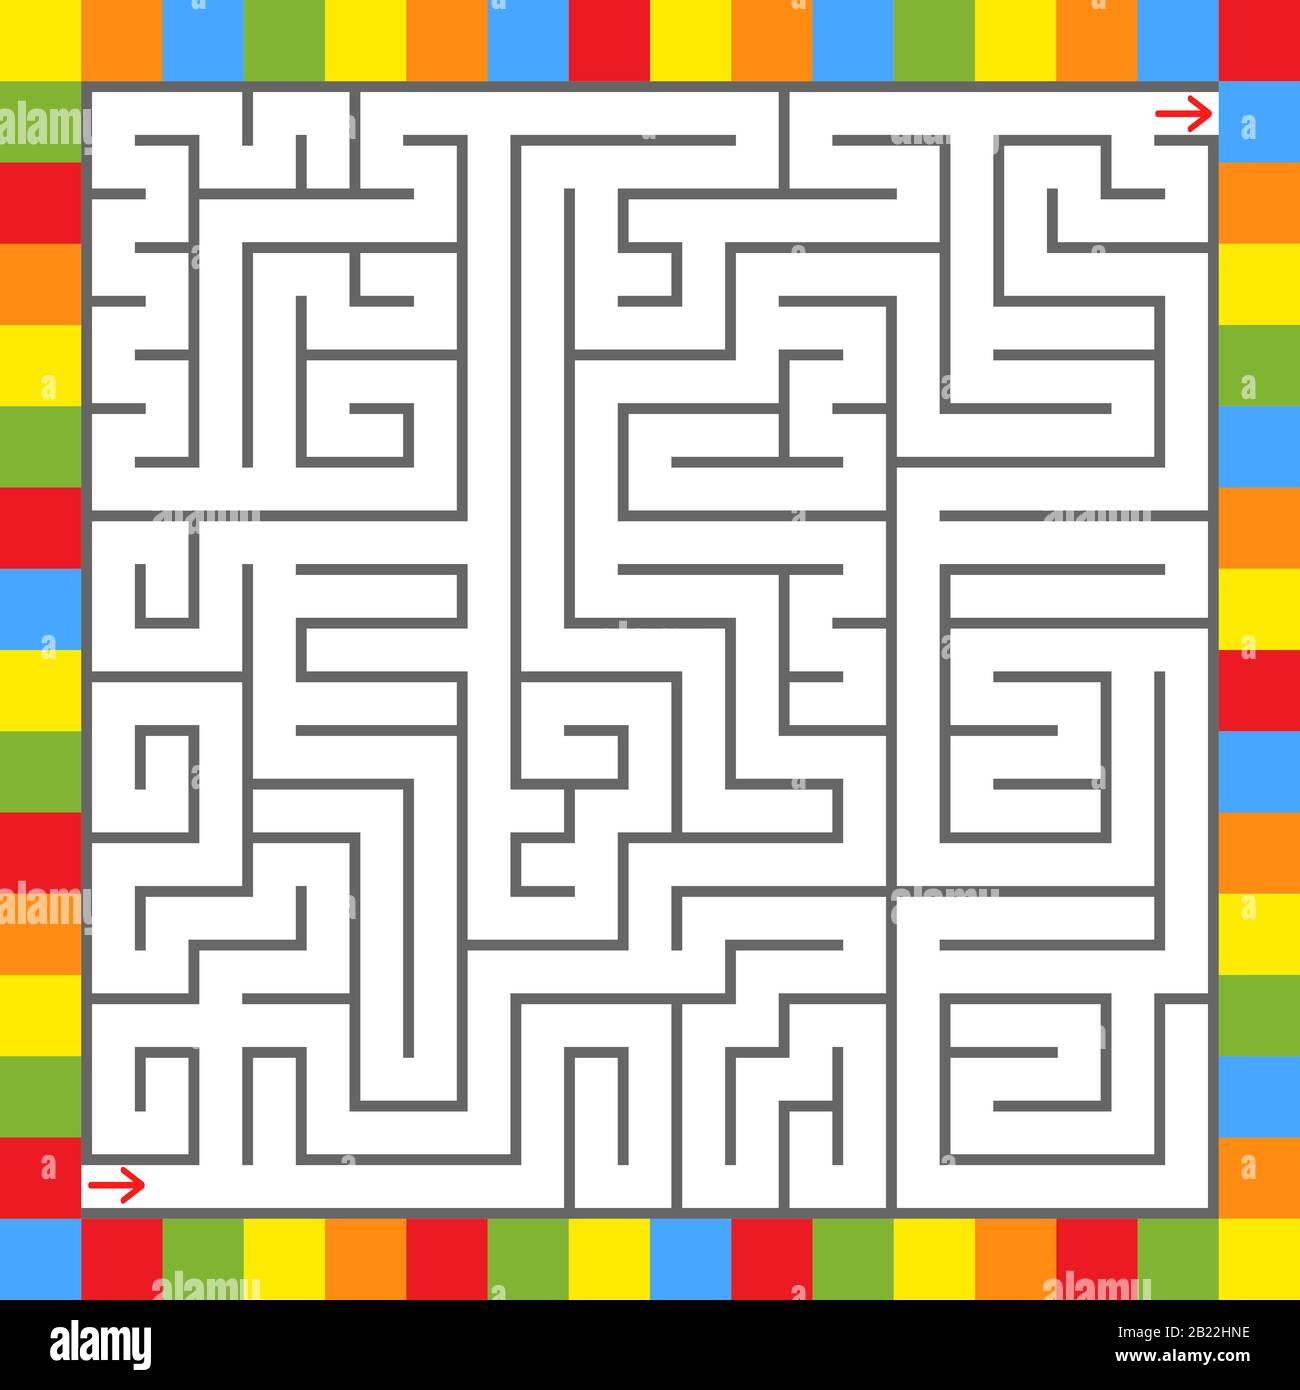 Square Color Labyrinth An Interesting Game For Children Simple Flat Vector Illustration Isolated On White Background Stock Vector Image Art Alamy